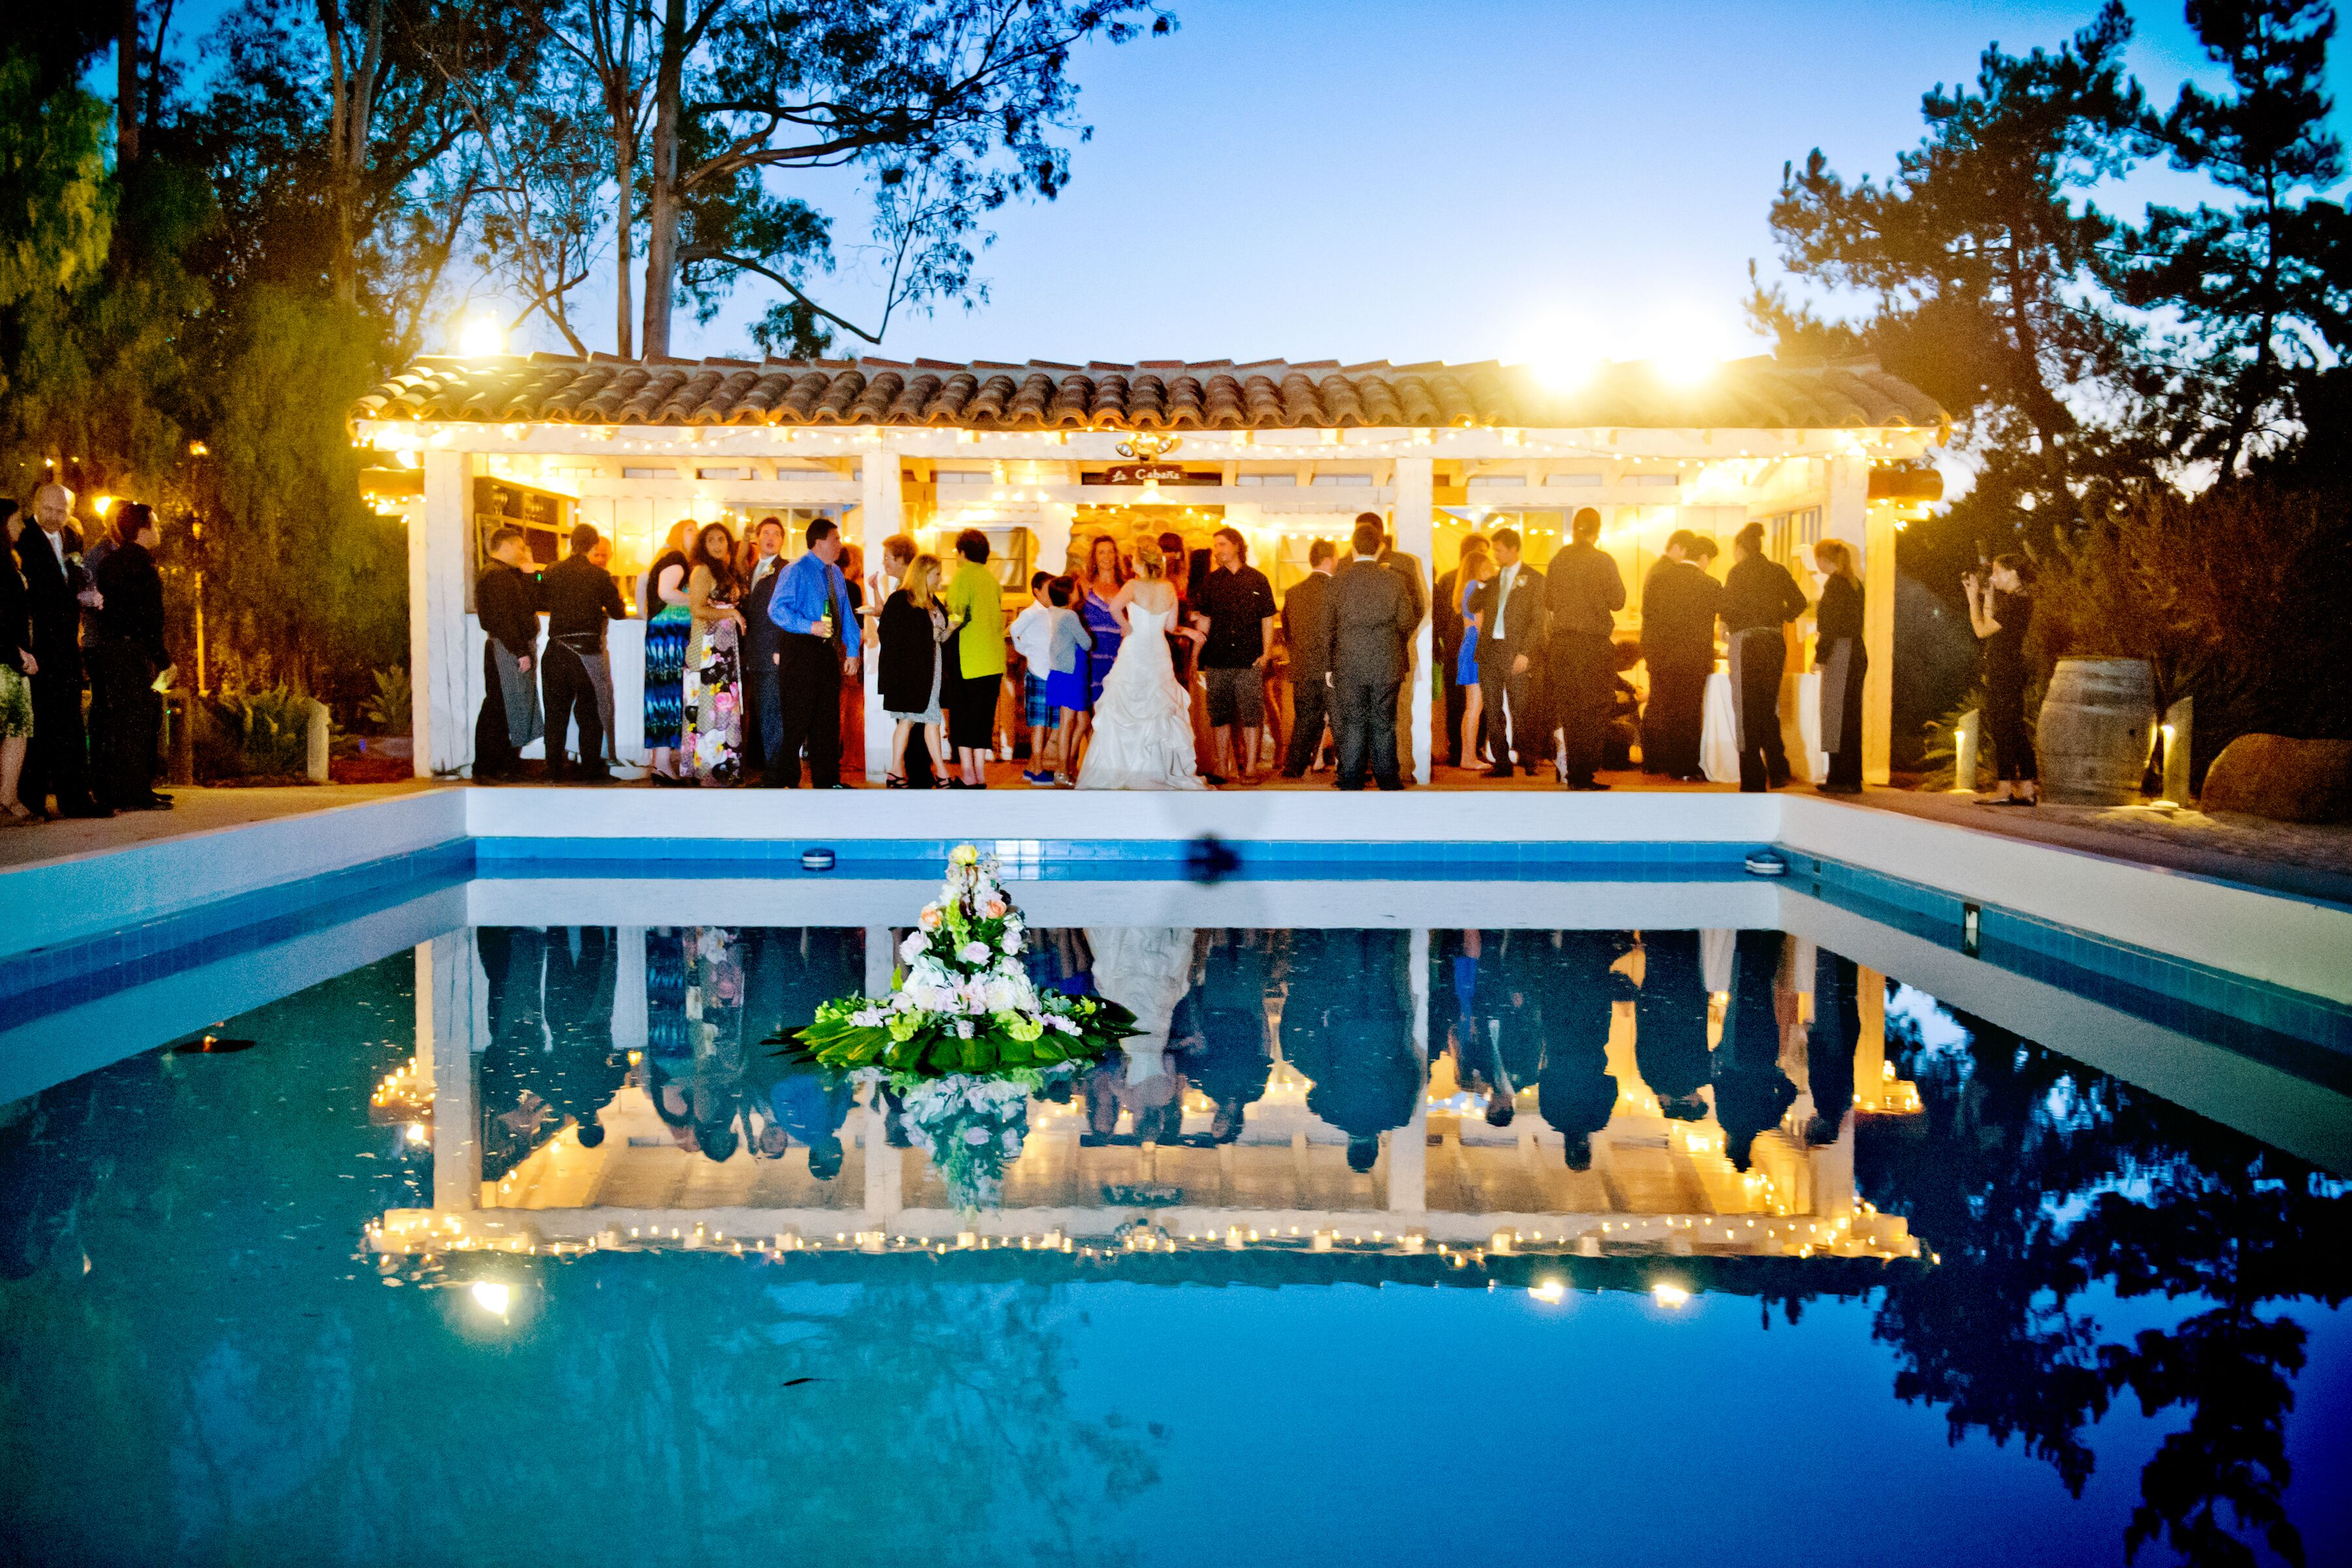 Wedding reception venues in san diego ca the knot leo carrillo ranch weddings special events junglespirit Images